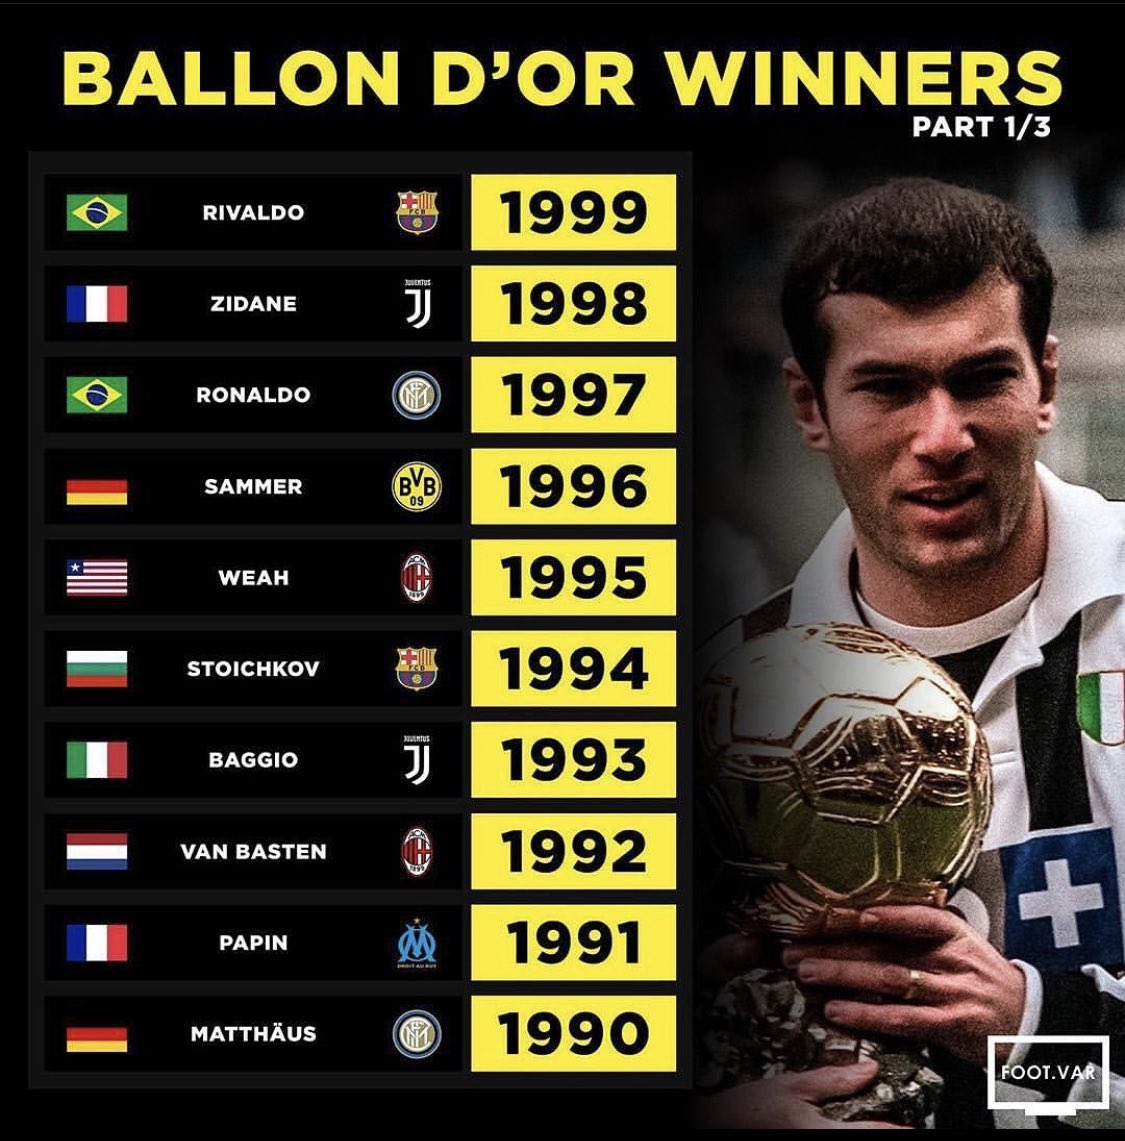 What an era of football.  Some incredible players & names there 👀 🔥  #ballondor